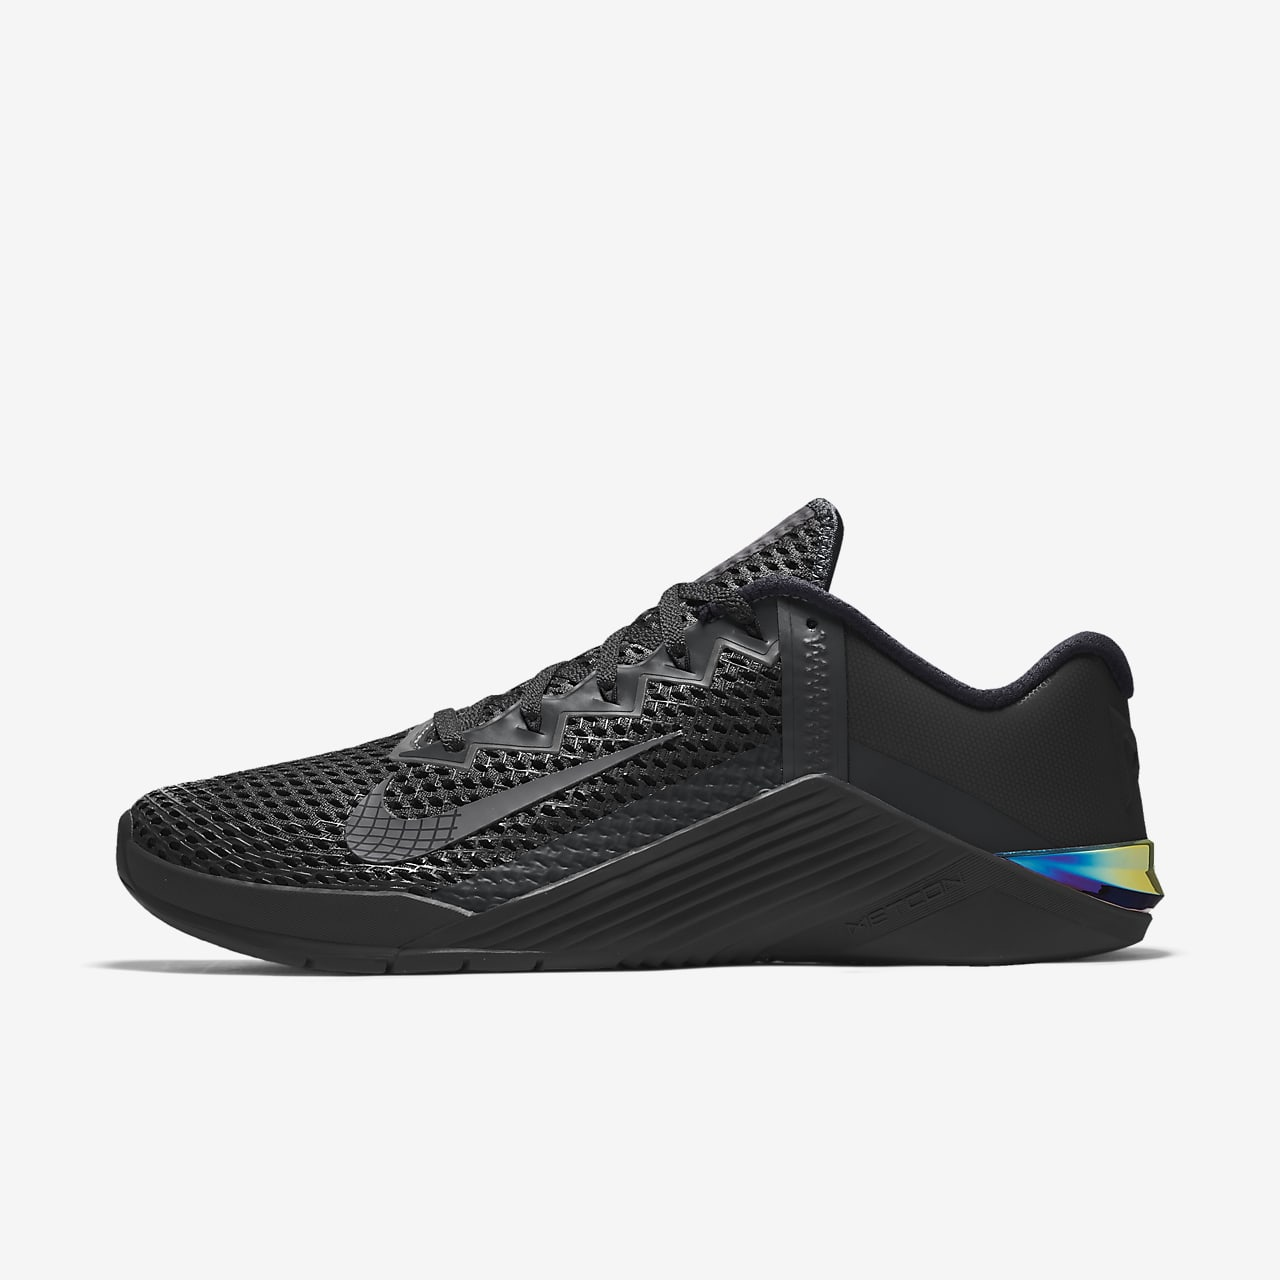 Chaussure de training personnalisée Nike Metcon 6 By You